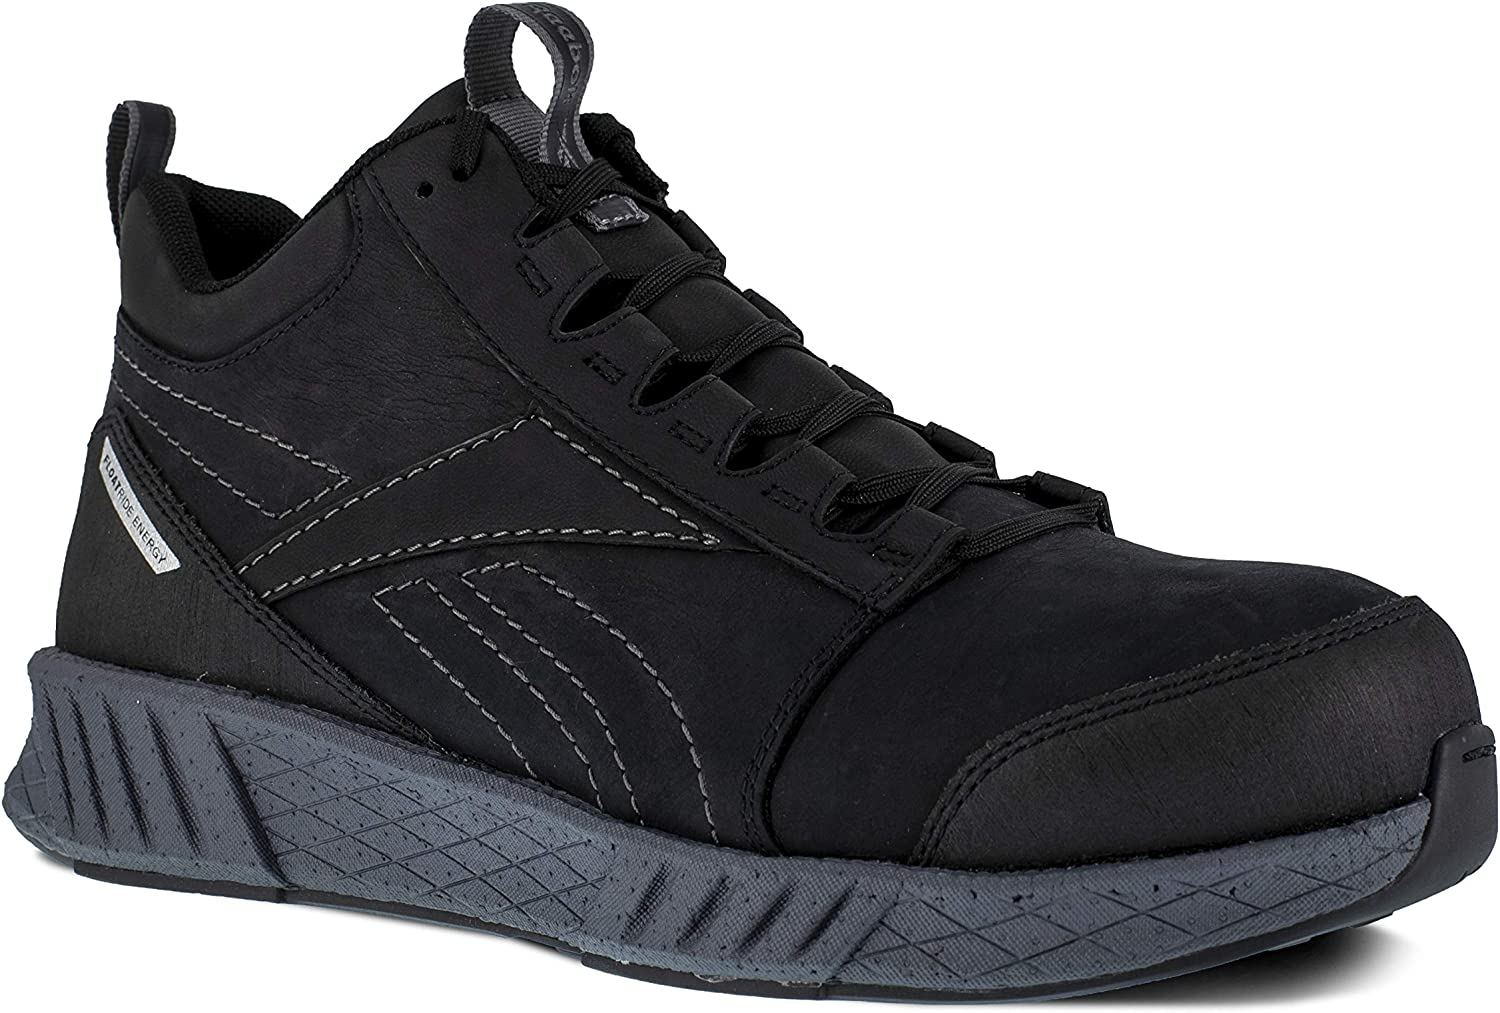 Reebok Men's Fusion Formidable Safety Toe Athletic Work Mid Cut